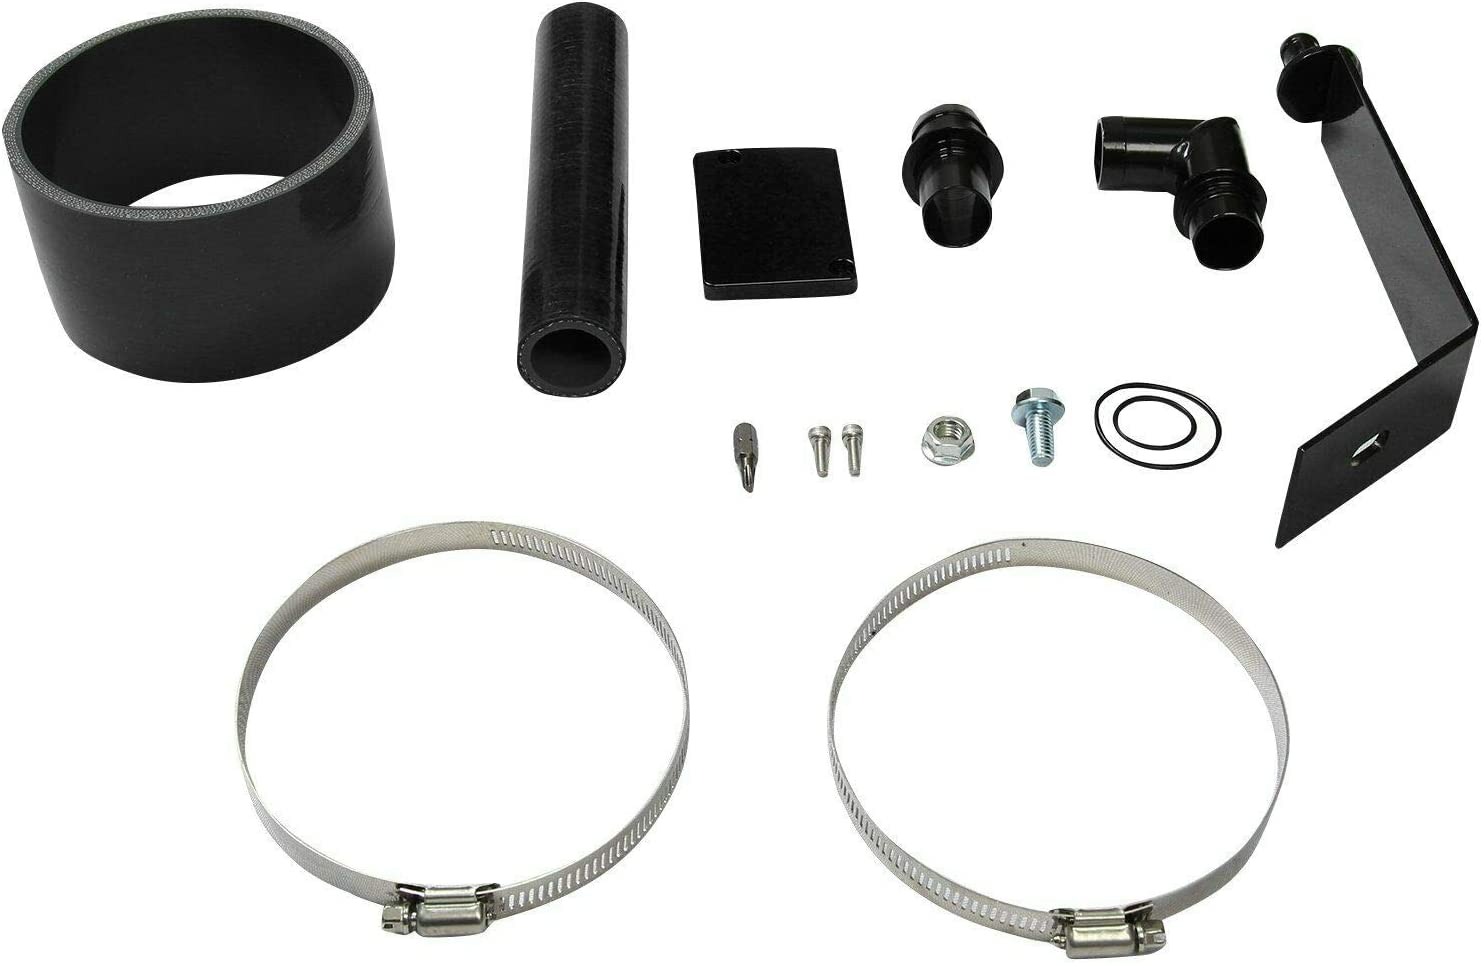 JIUAUTOPARTS Cold Air Intake Kit Black Fit for 2003-2007 Ford F-250//350 6.0L Powerstroke Diesel